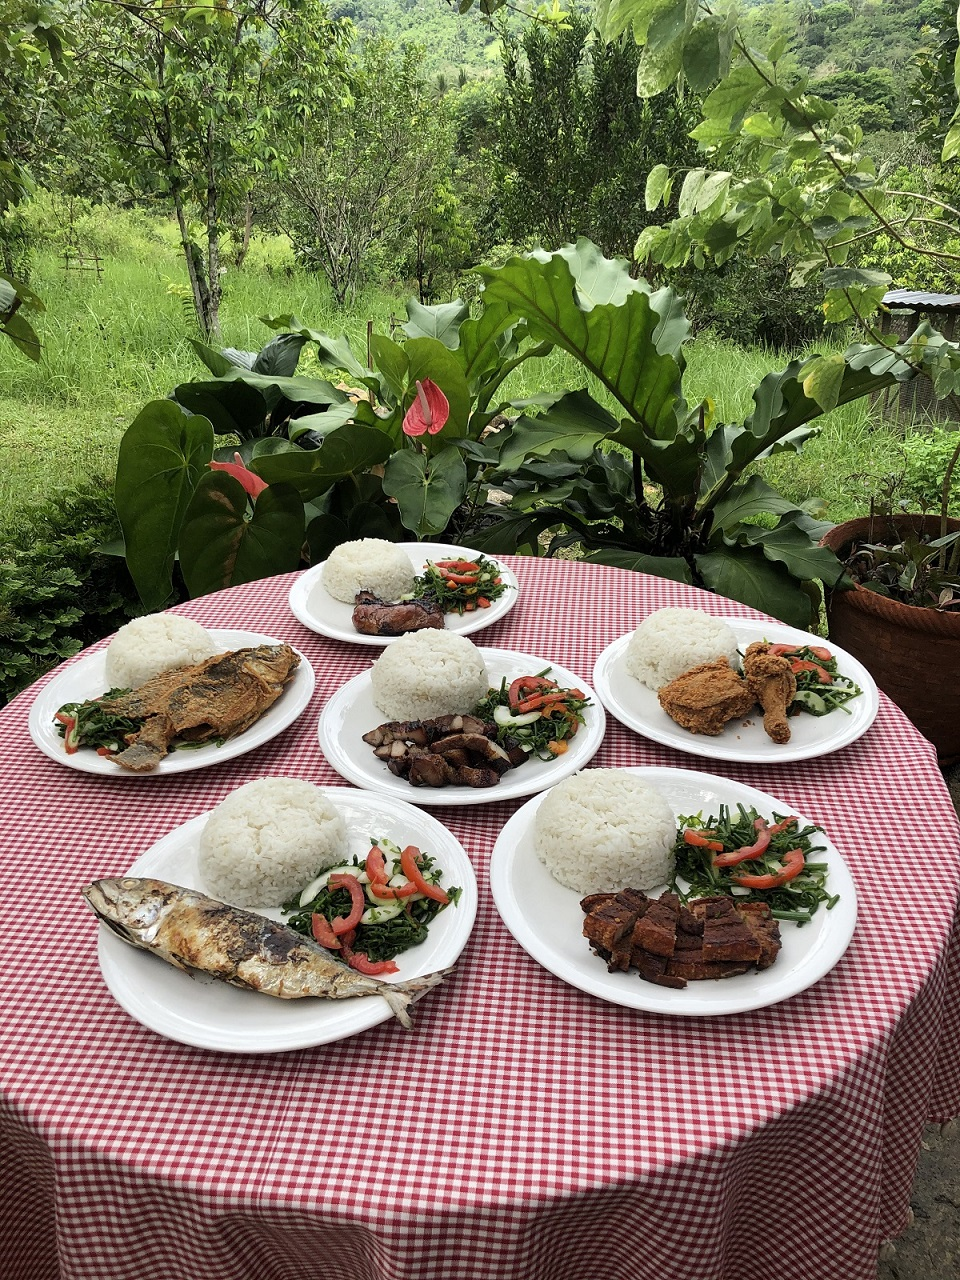 Assorted Plated Meals